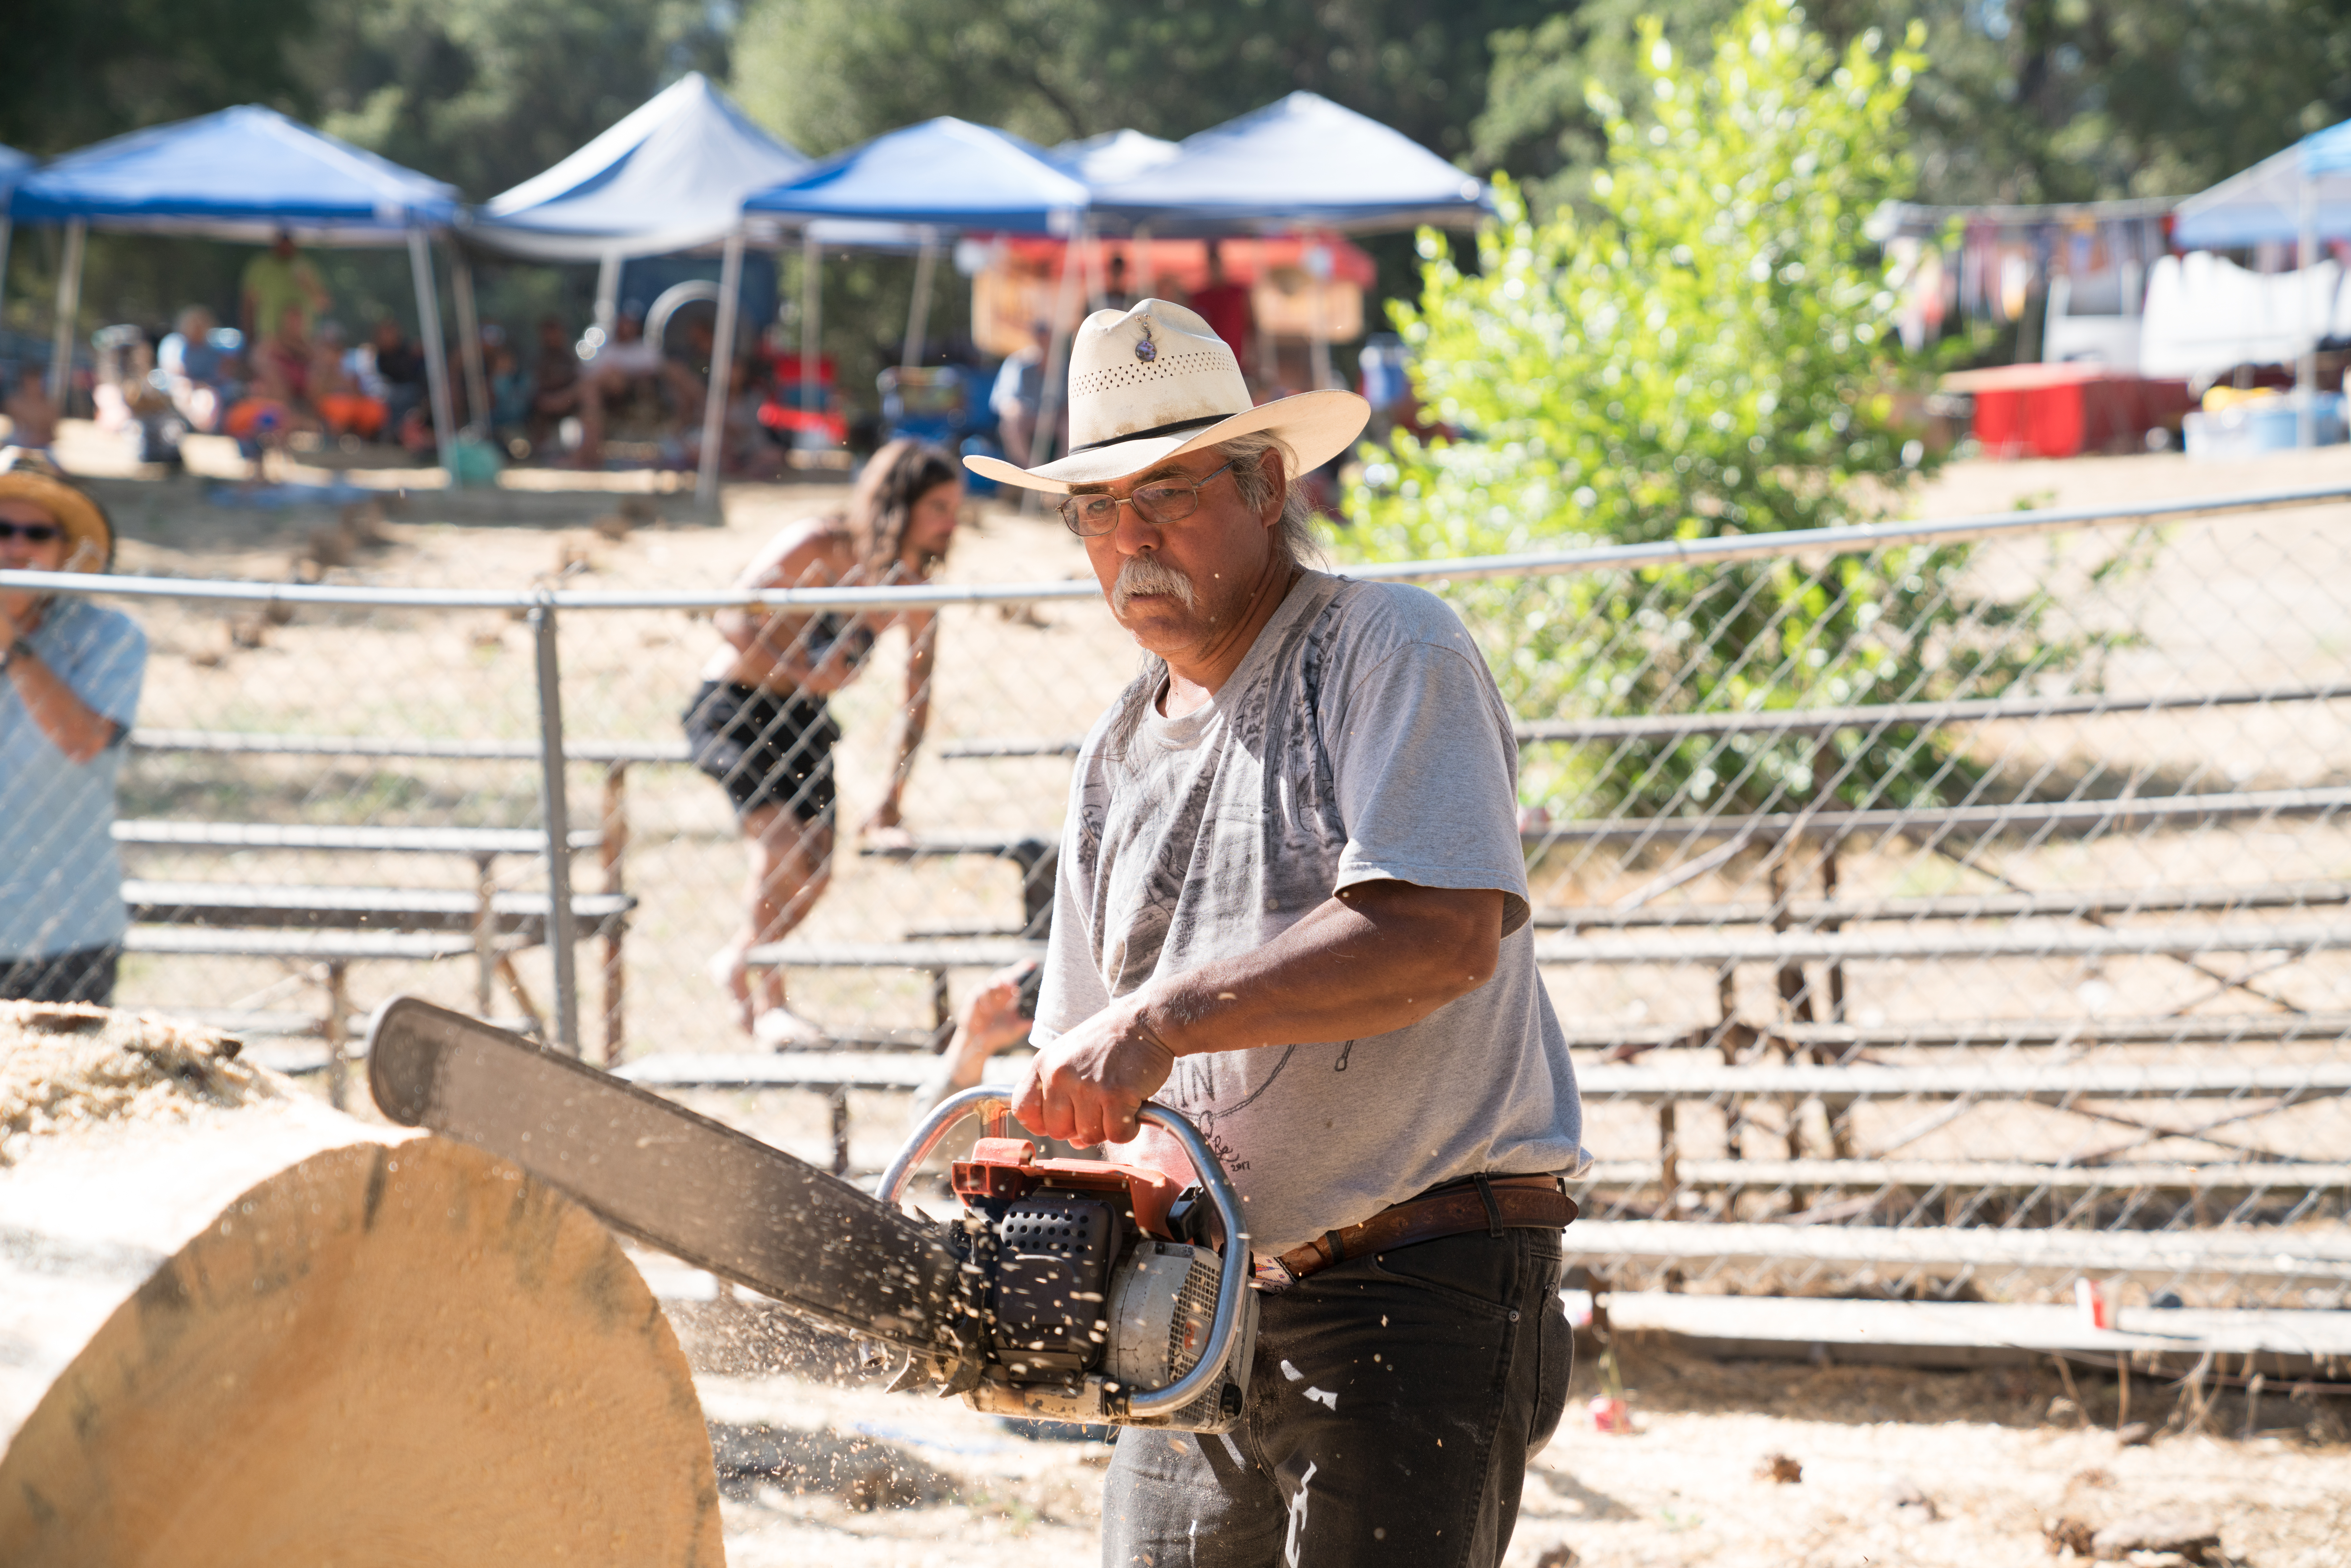 Hot Saw Competition at the Mid-Sierra Loggers Jamboree